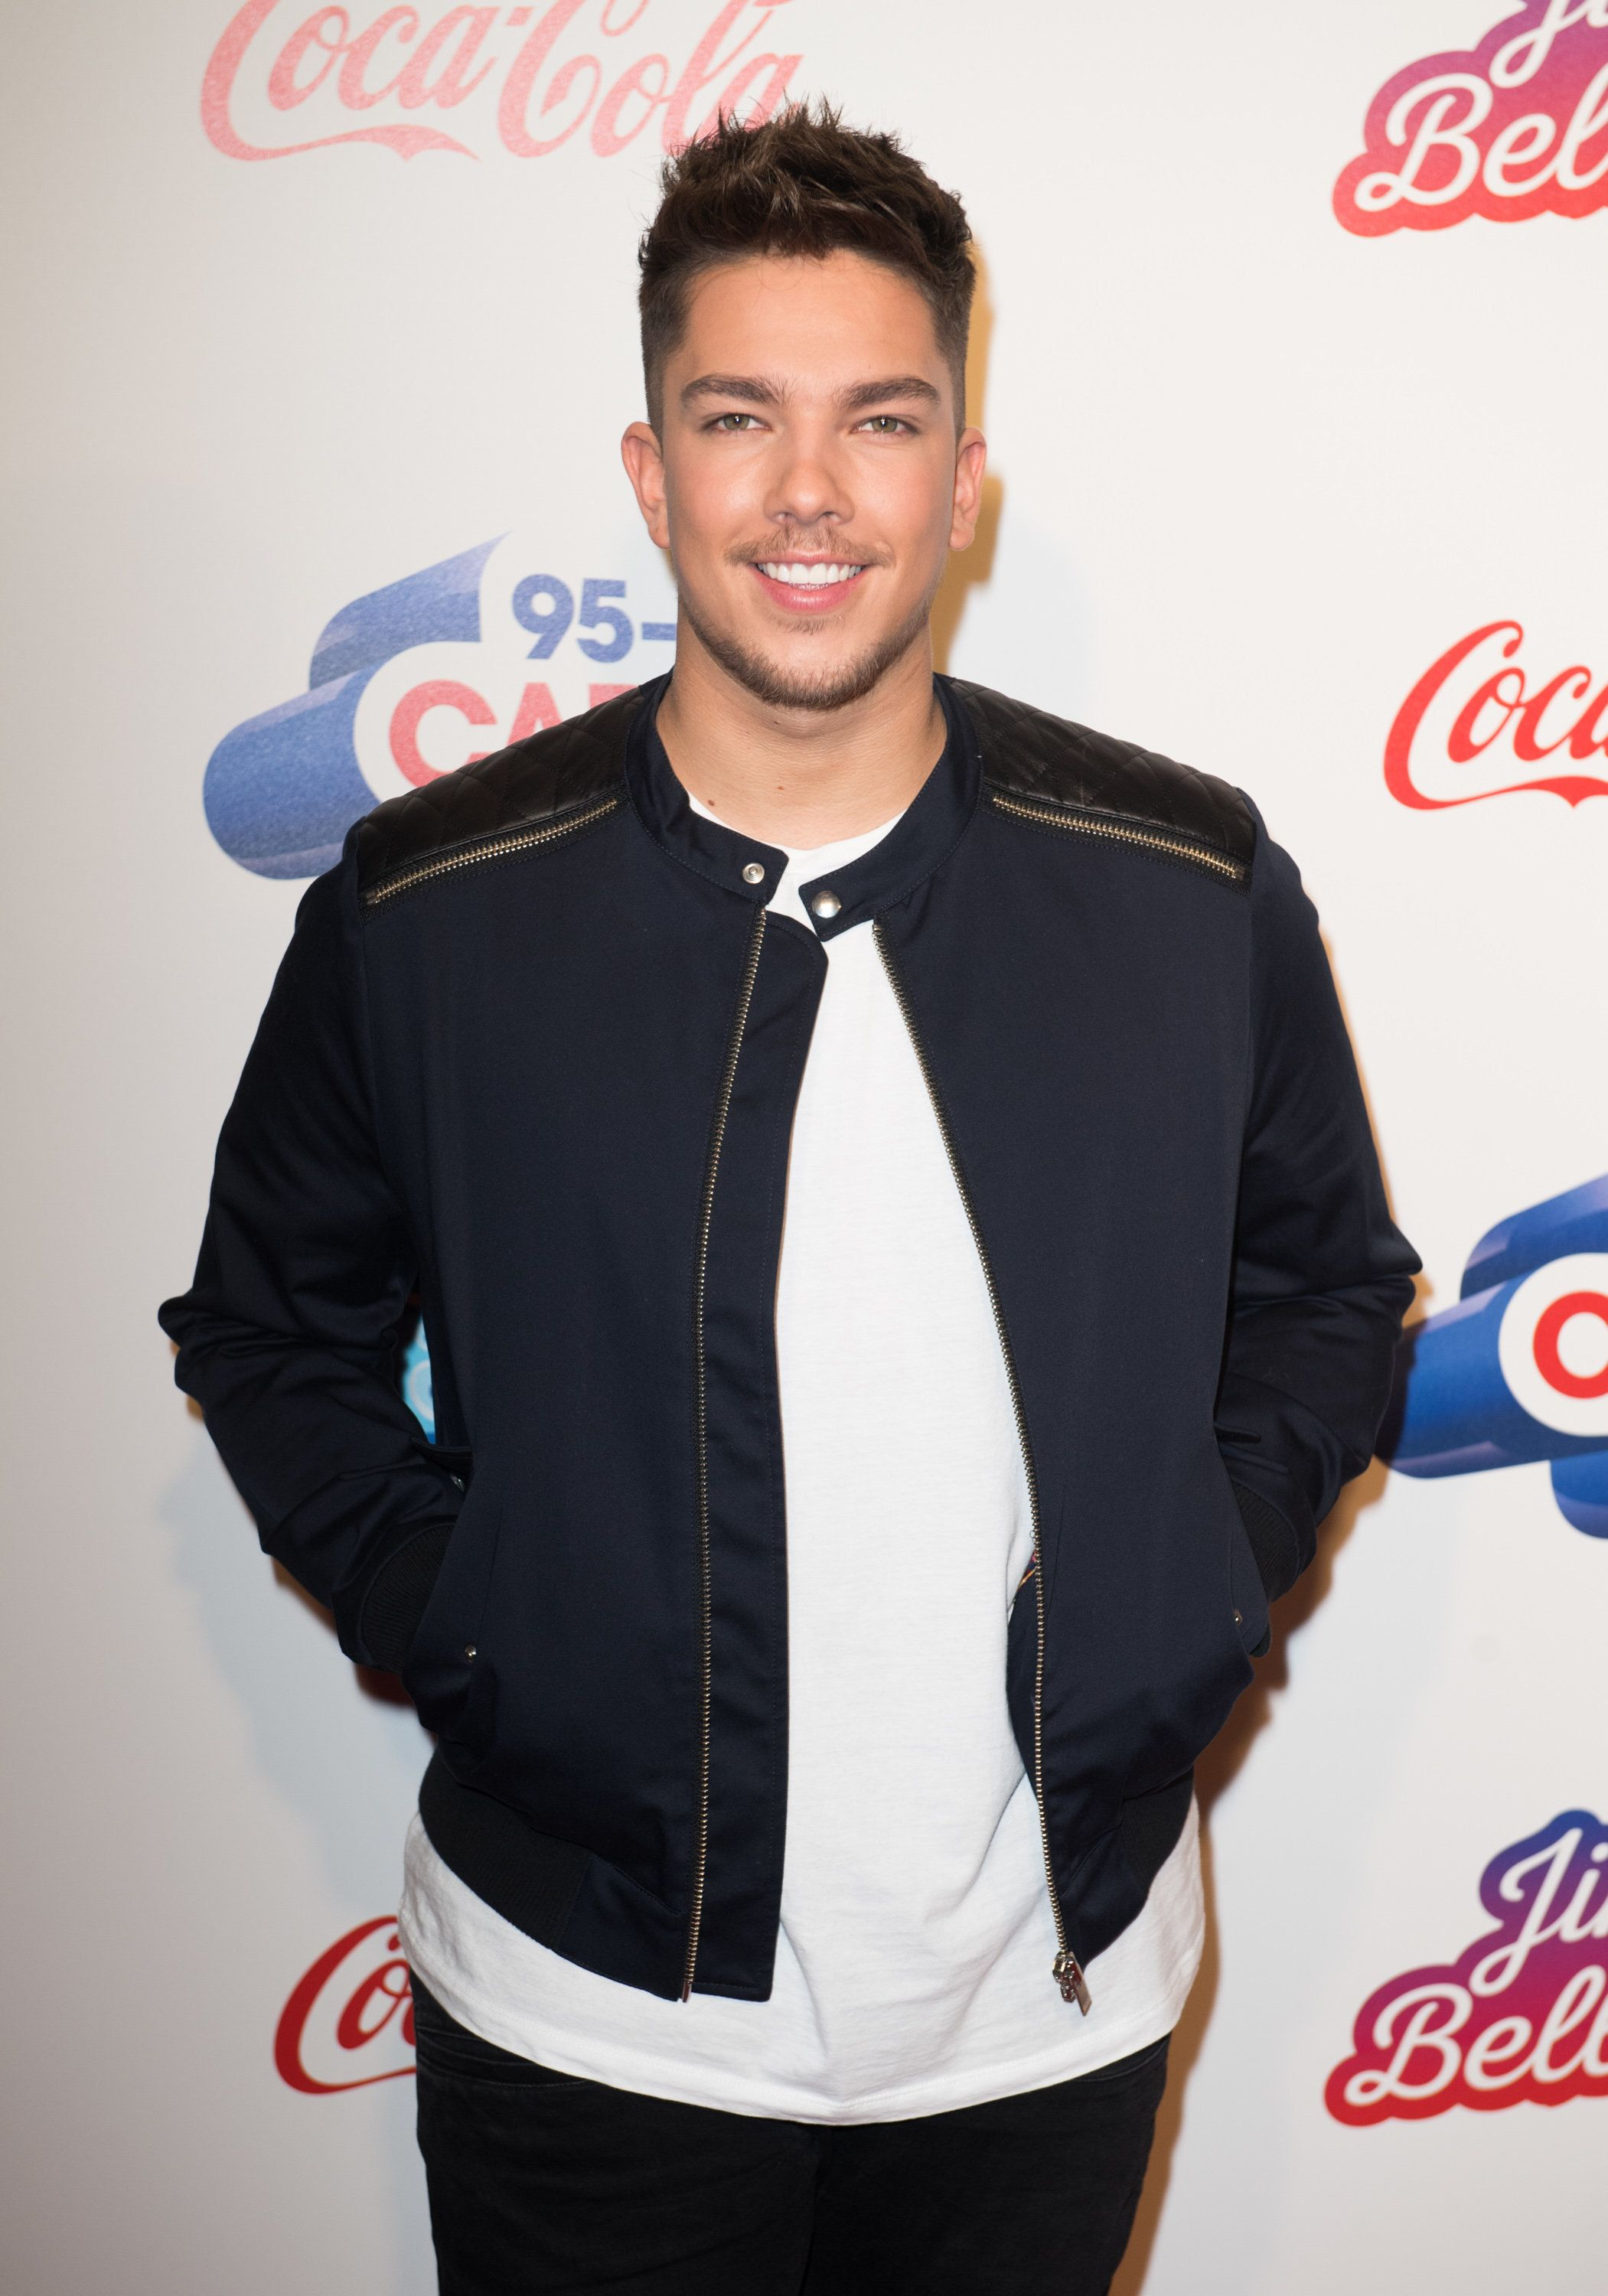 'X Factor' Winner Matt Terry Parts Ways With Record Label After 18